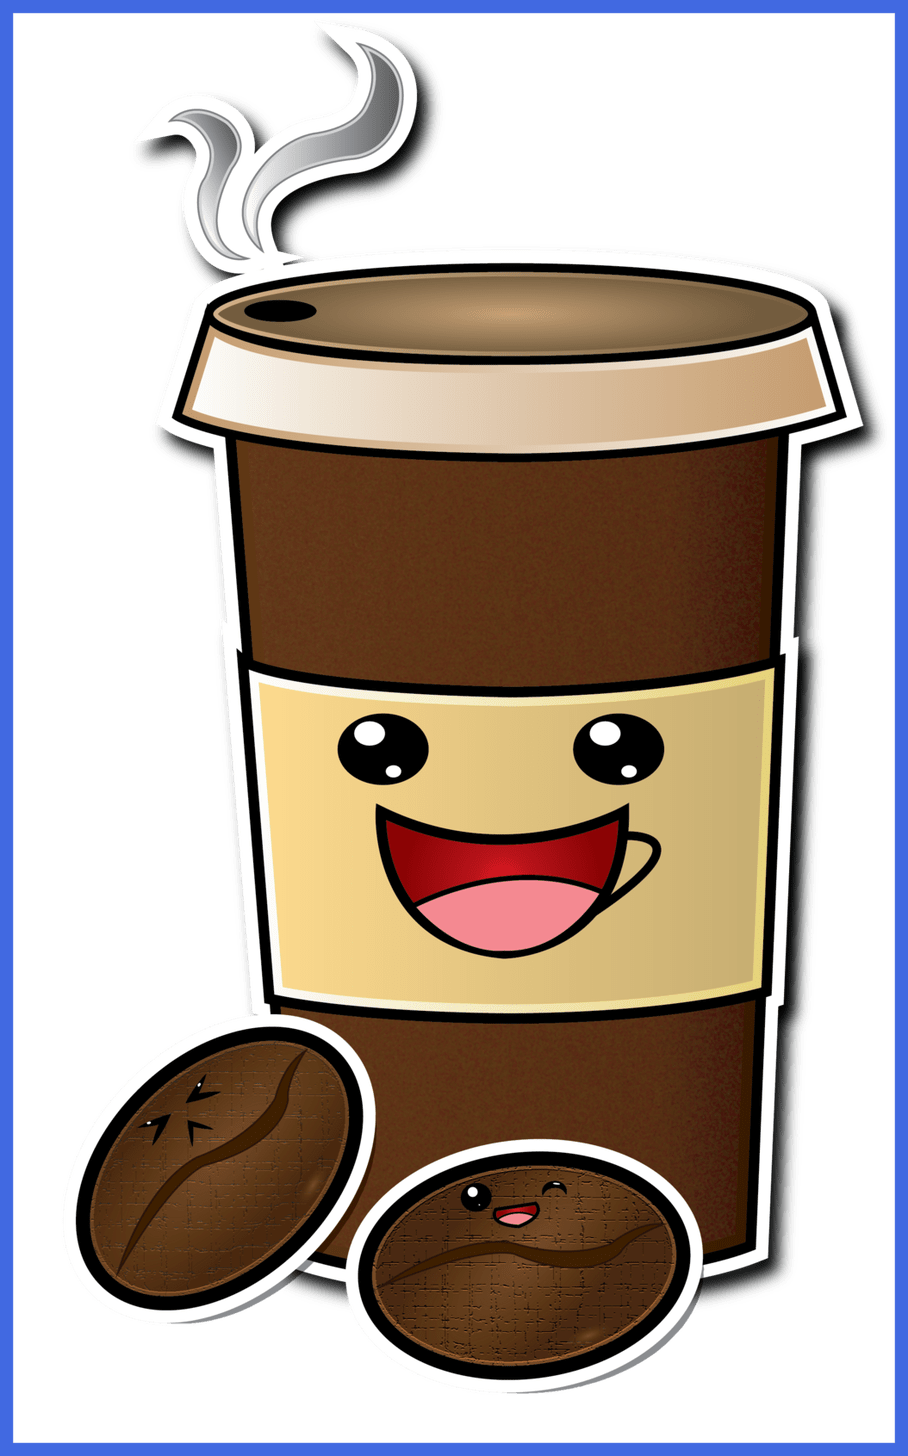 Inspiring cute cartoon cup. Words clipart coffee